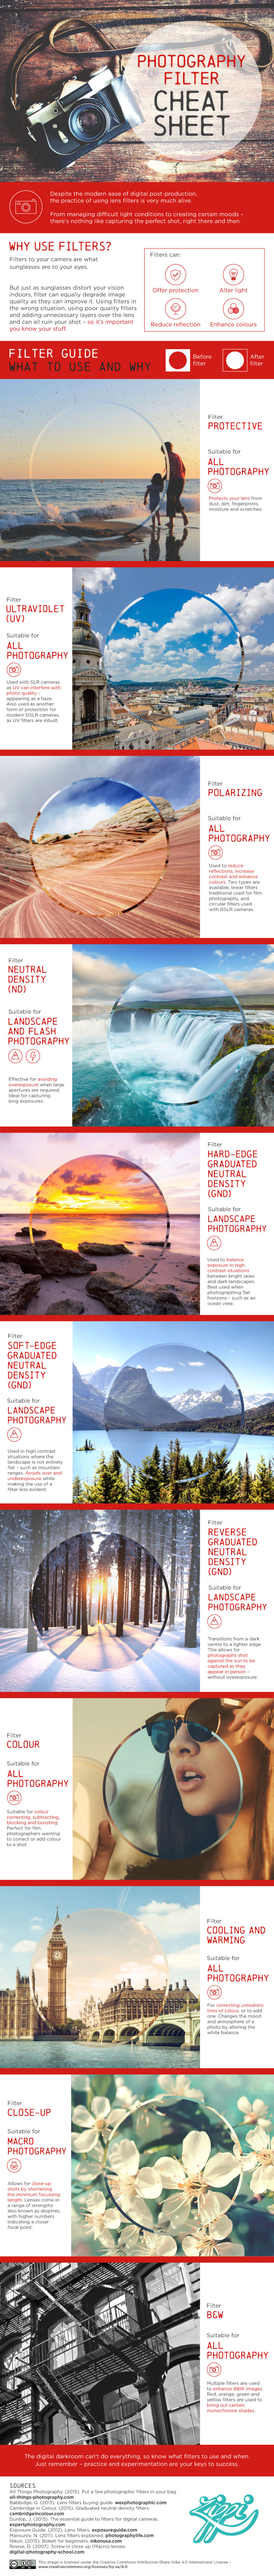 Photography Filters - A Cheat Sheet